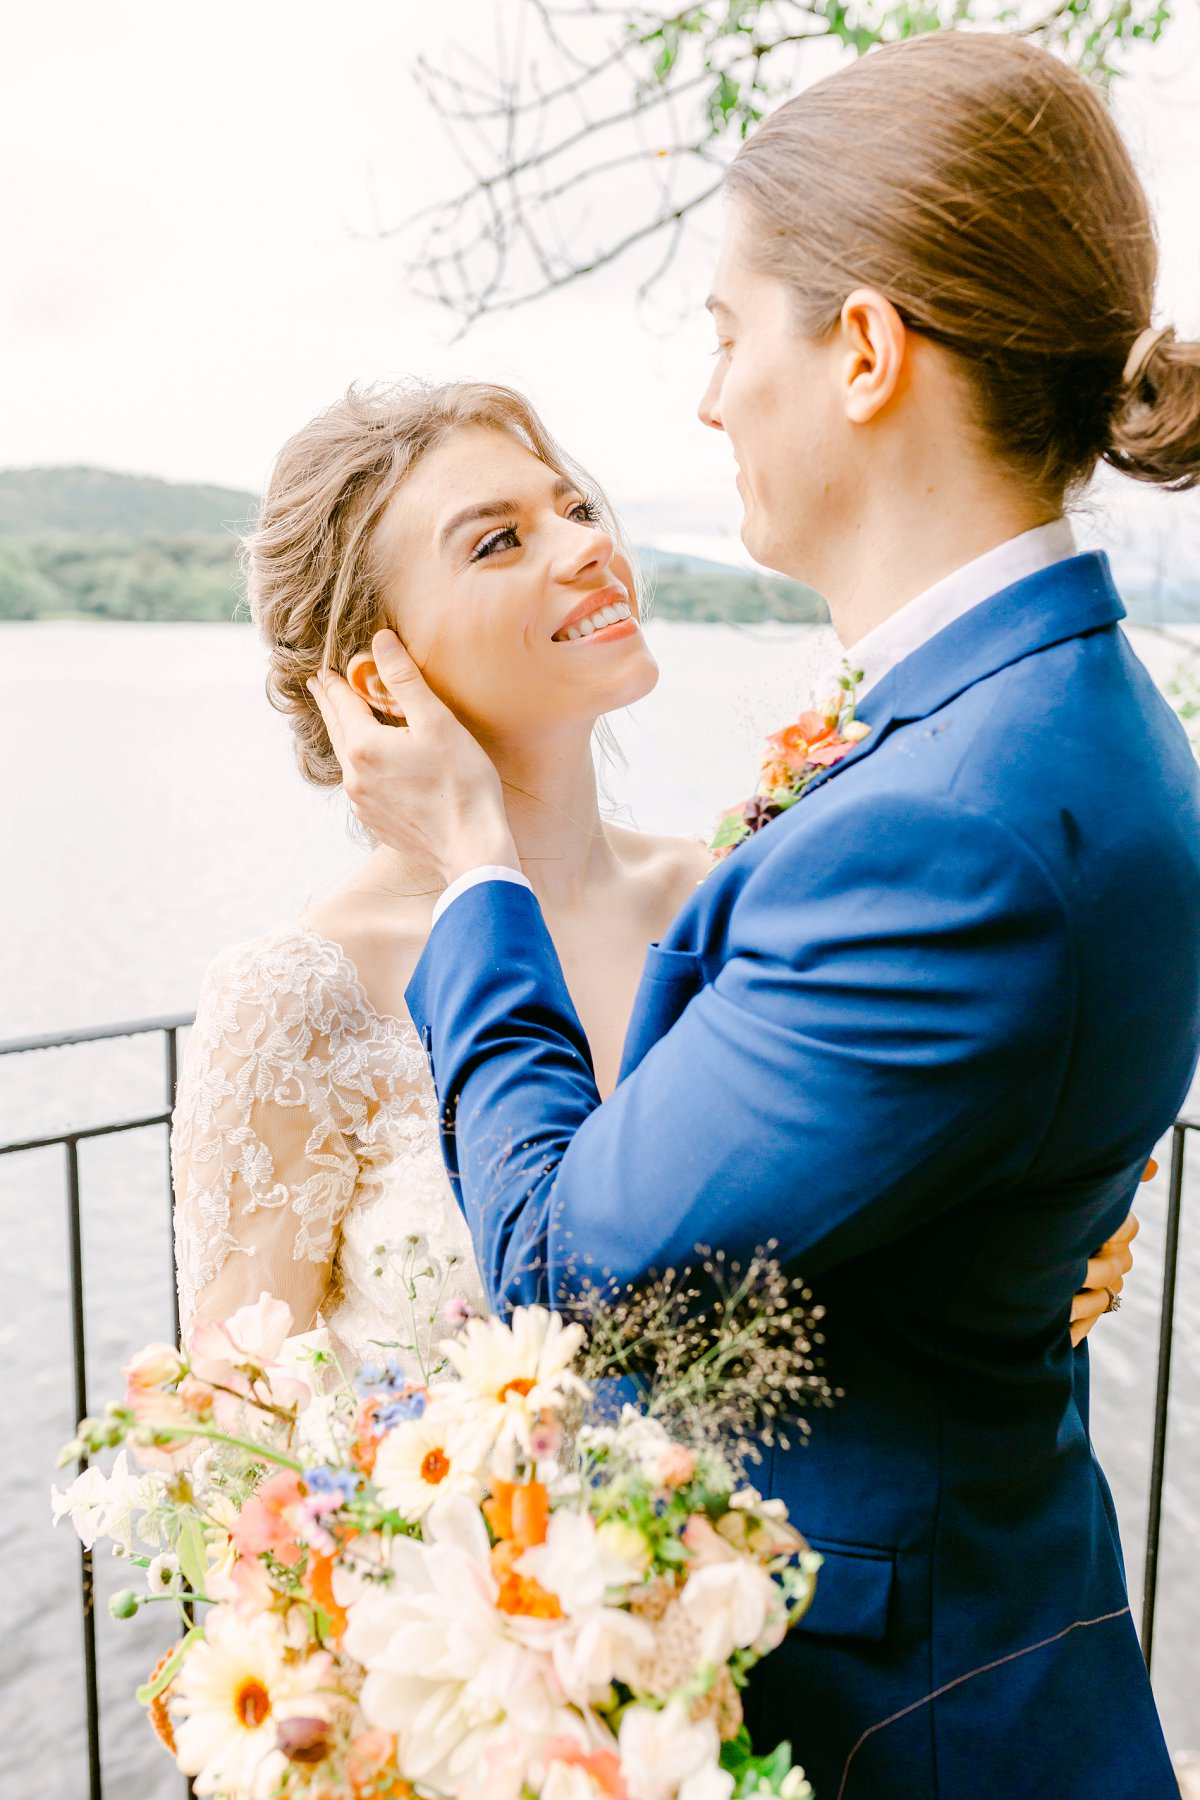 A Styled Wedding Shoot at Town Head Estate Windermere (c) Ailsa Reeve Photography (11)